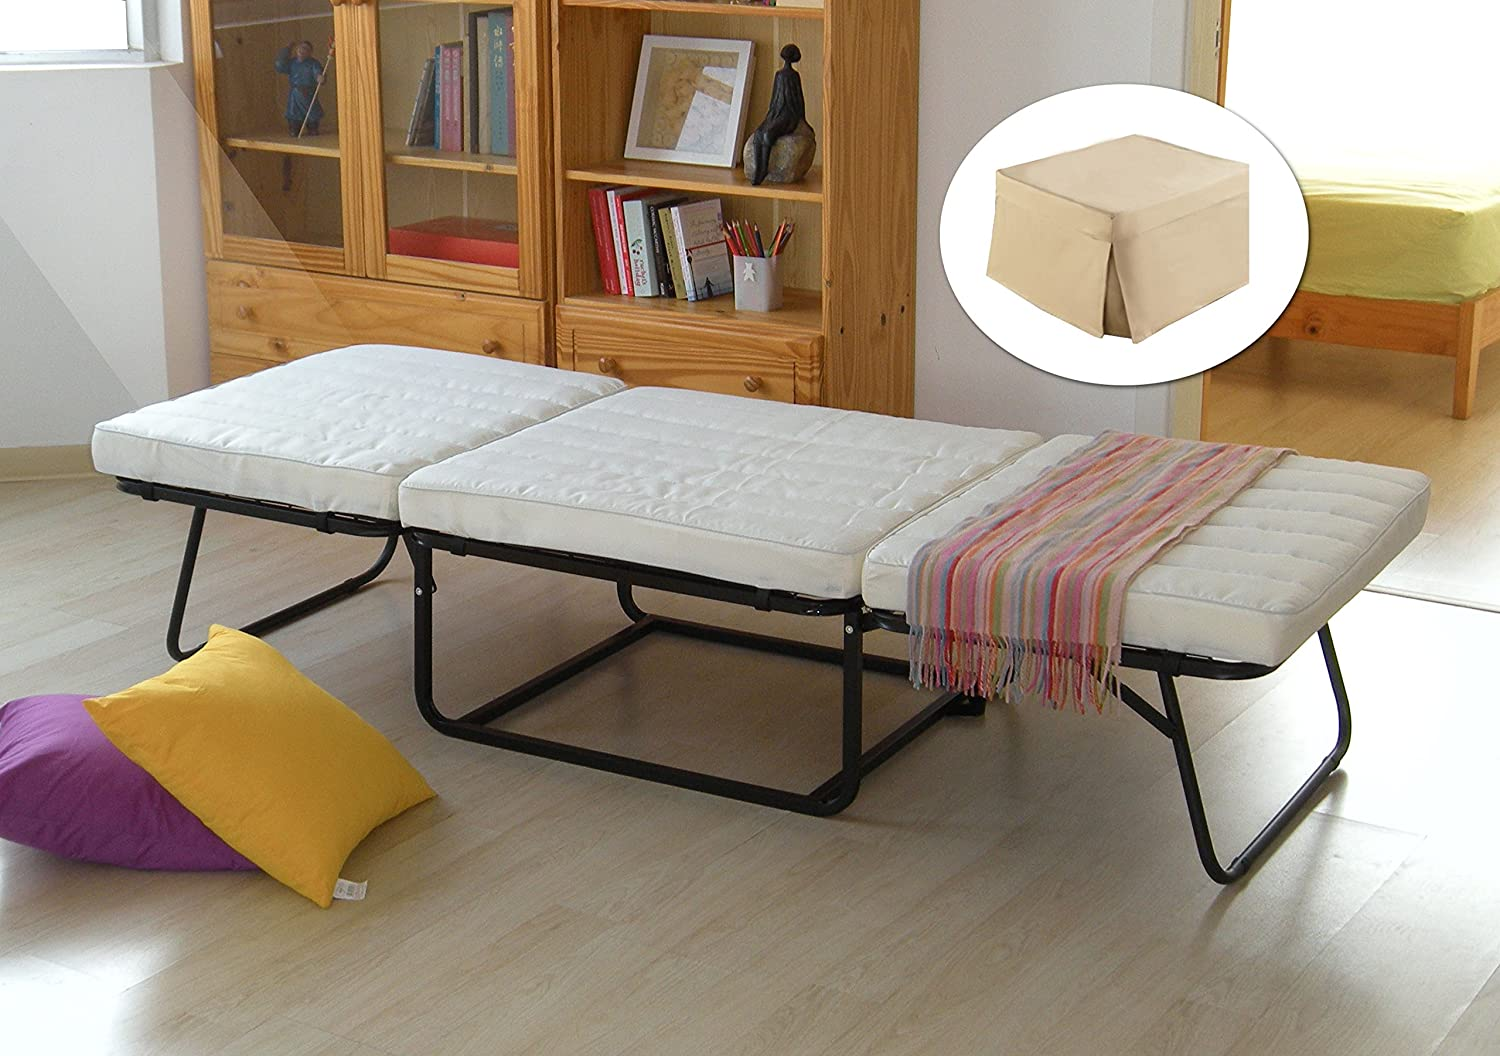 Резултат с изображение за Fold-Out Ottoman Bed goldviolin